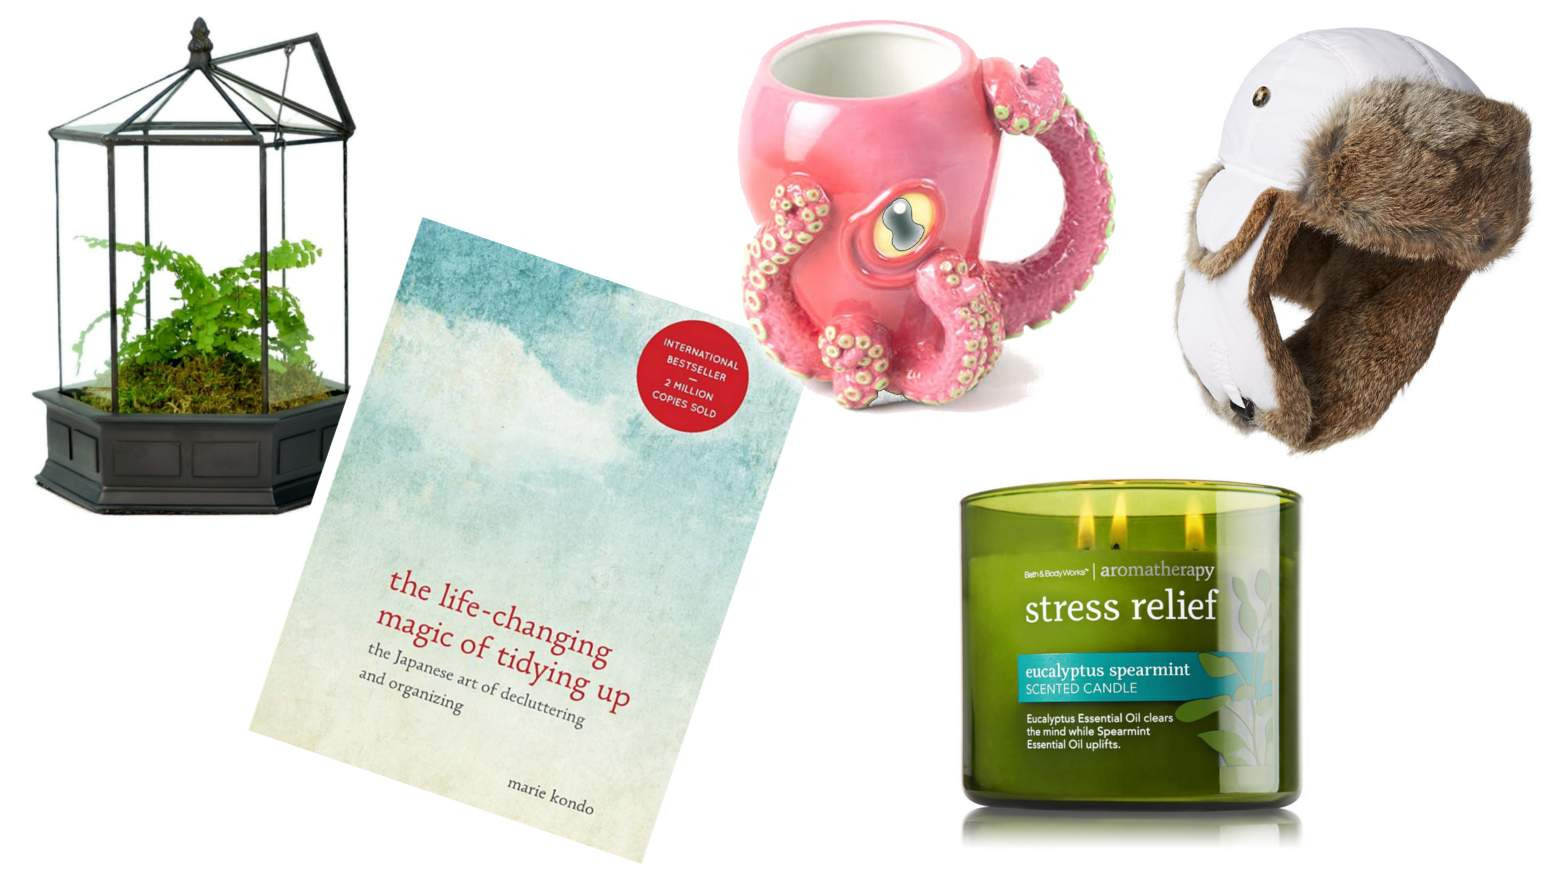 Best ideas about Gift Ideas For Girlfriend Christmas . Save or Pin Top 20 Best Gifts for Your Girlfriend Now.